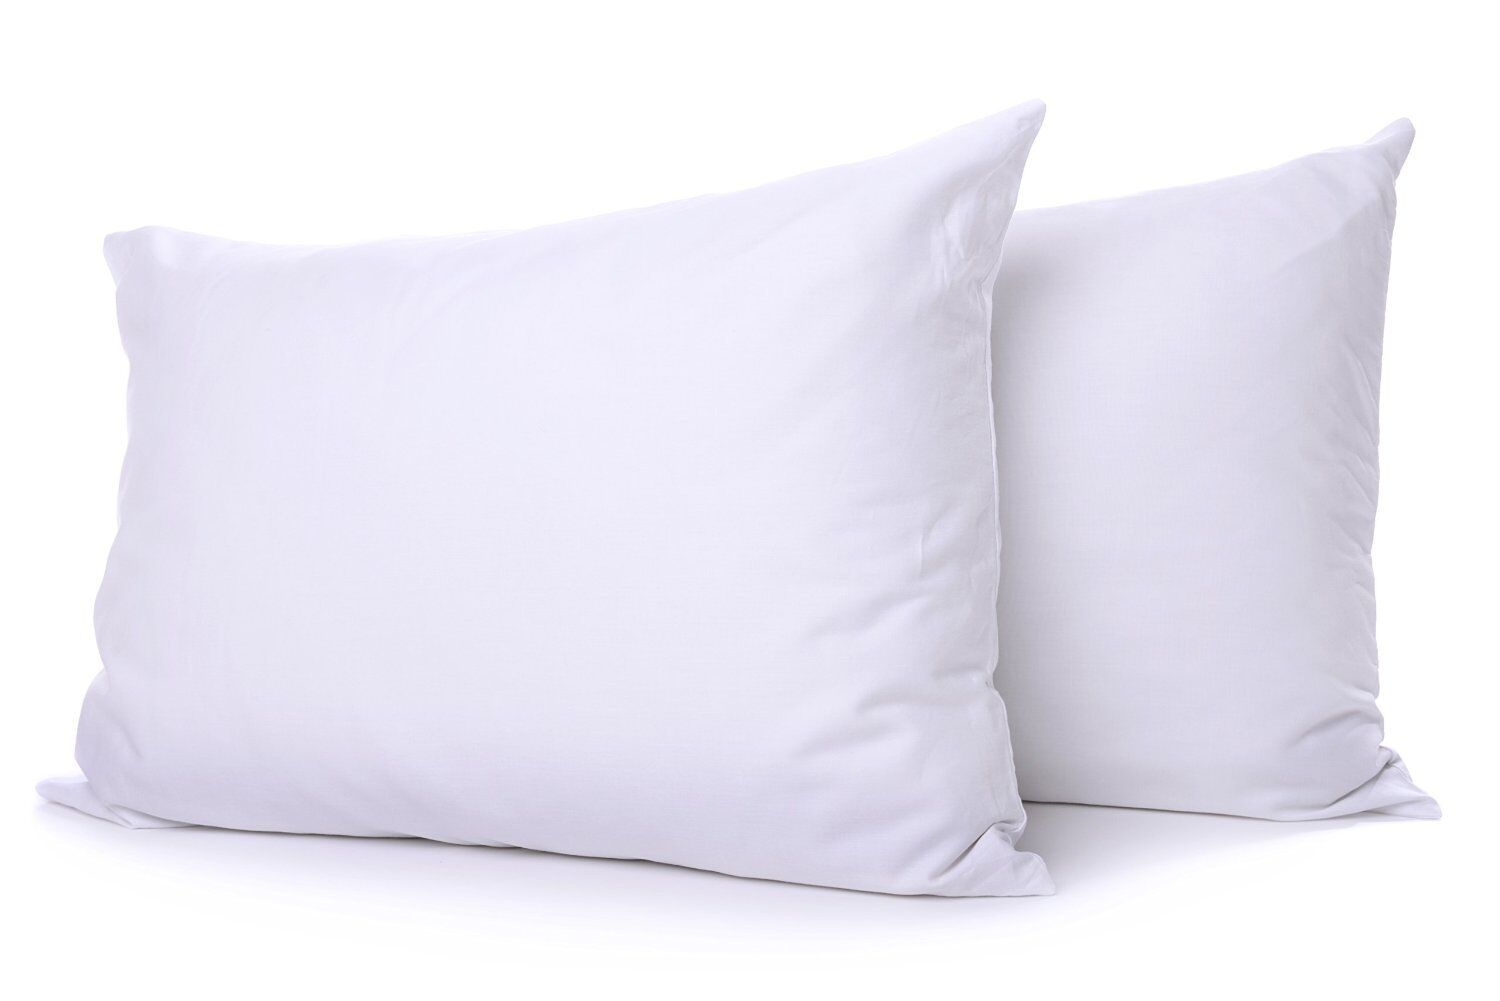 PAIR SUPER BOUNCE BACK MICROFIBRE PILLOWS LUXURY 5 STAR HOTEL QUALITY